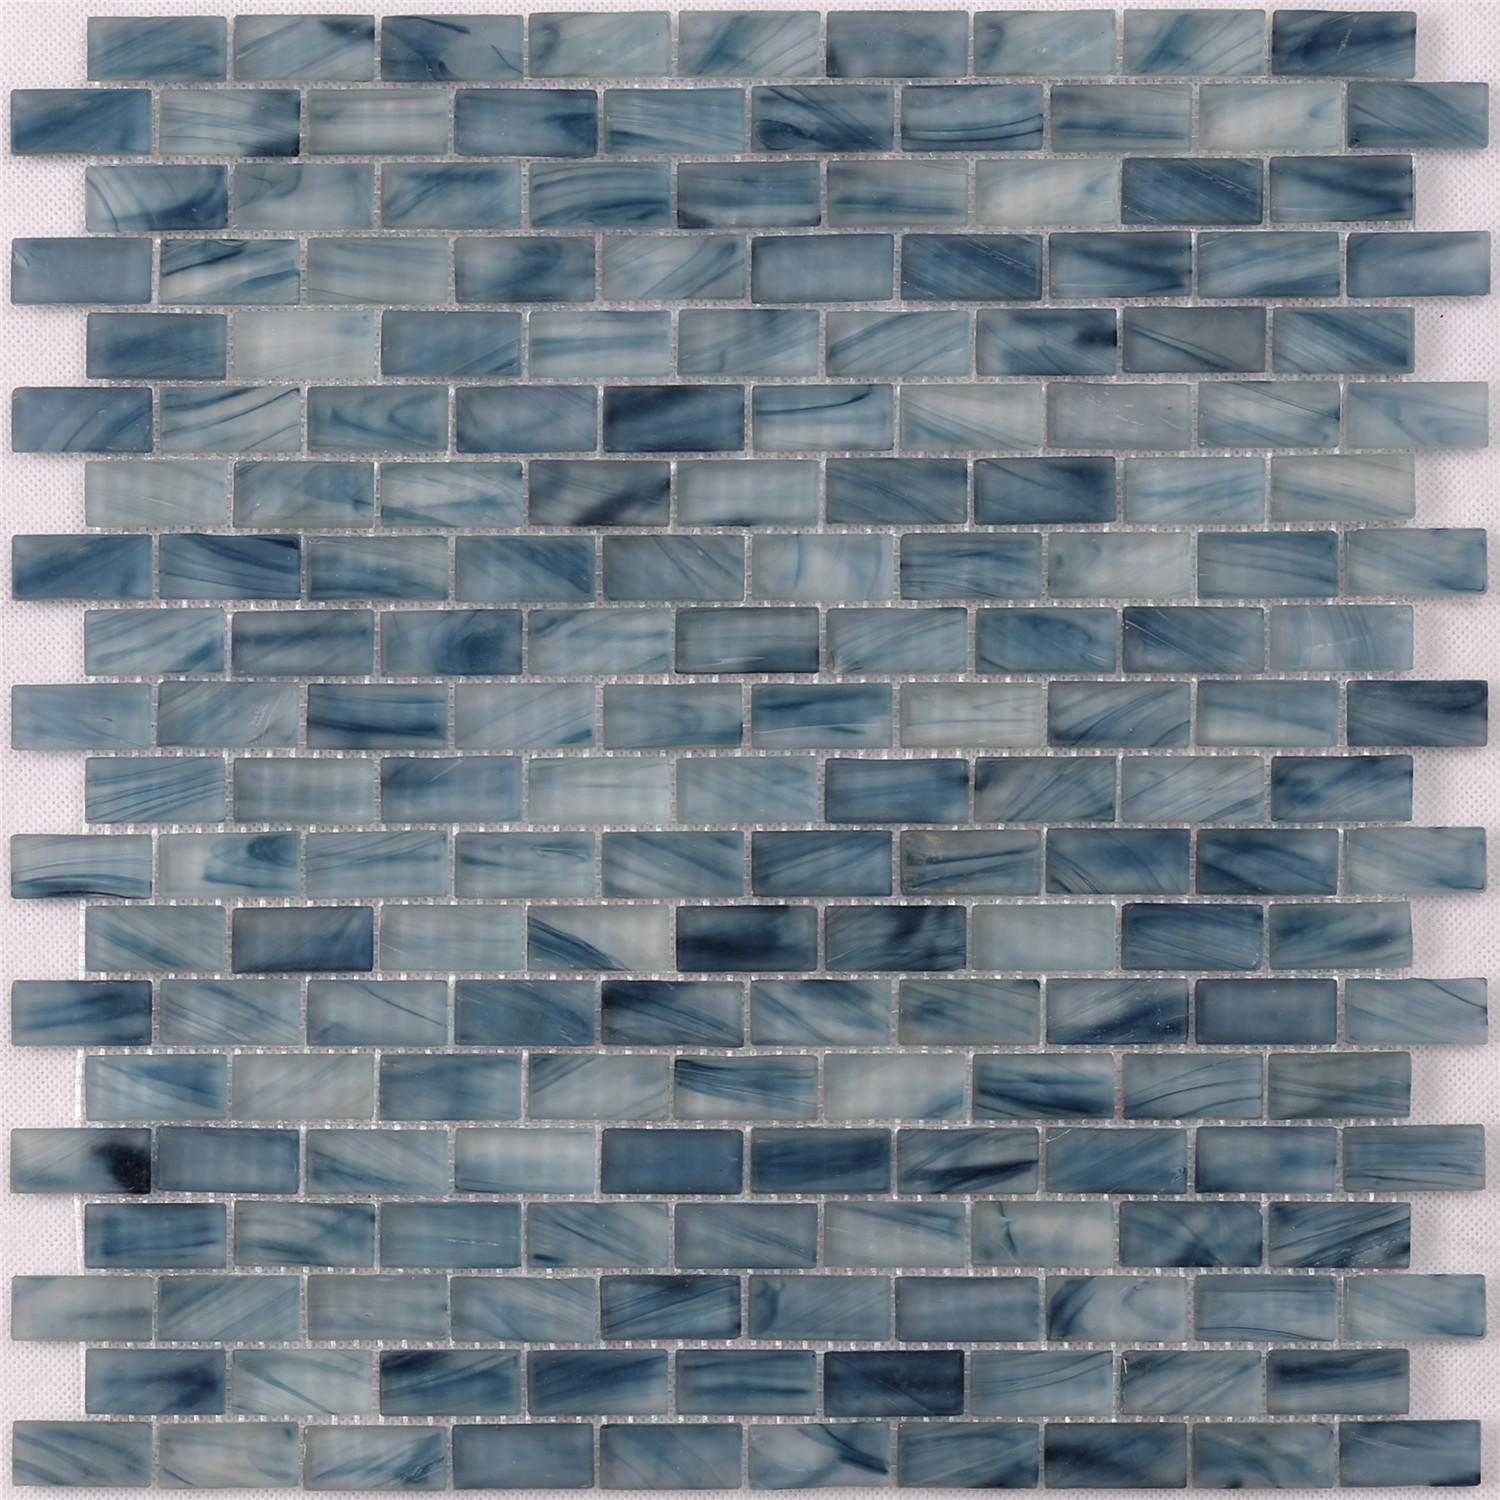 Heng Xing 4csb33 swimming pool tile pictures for business for fountain-1